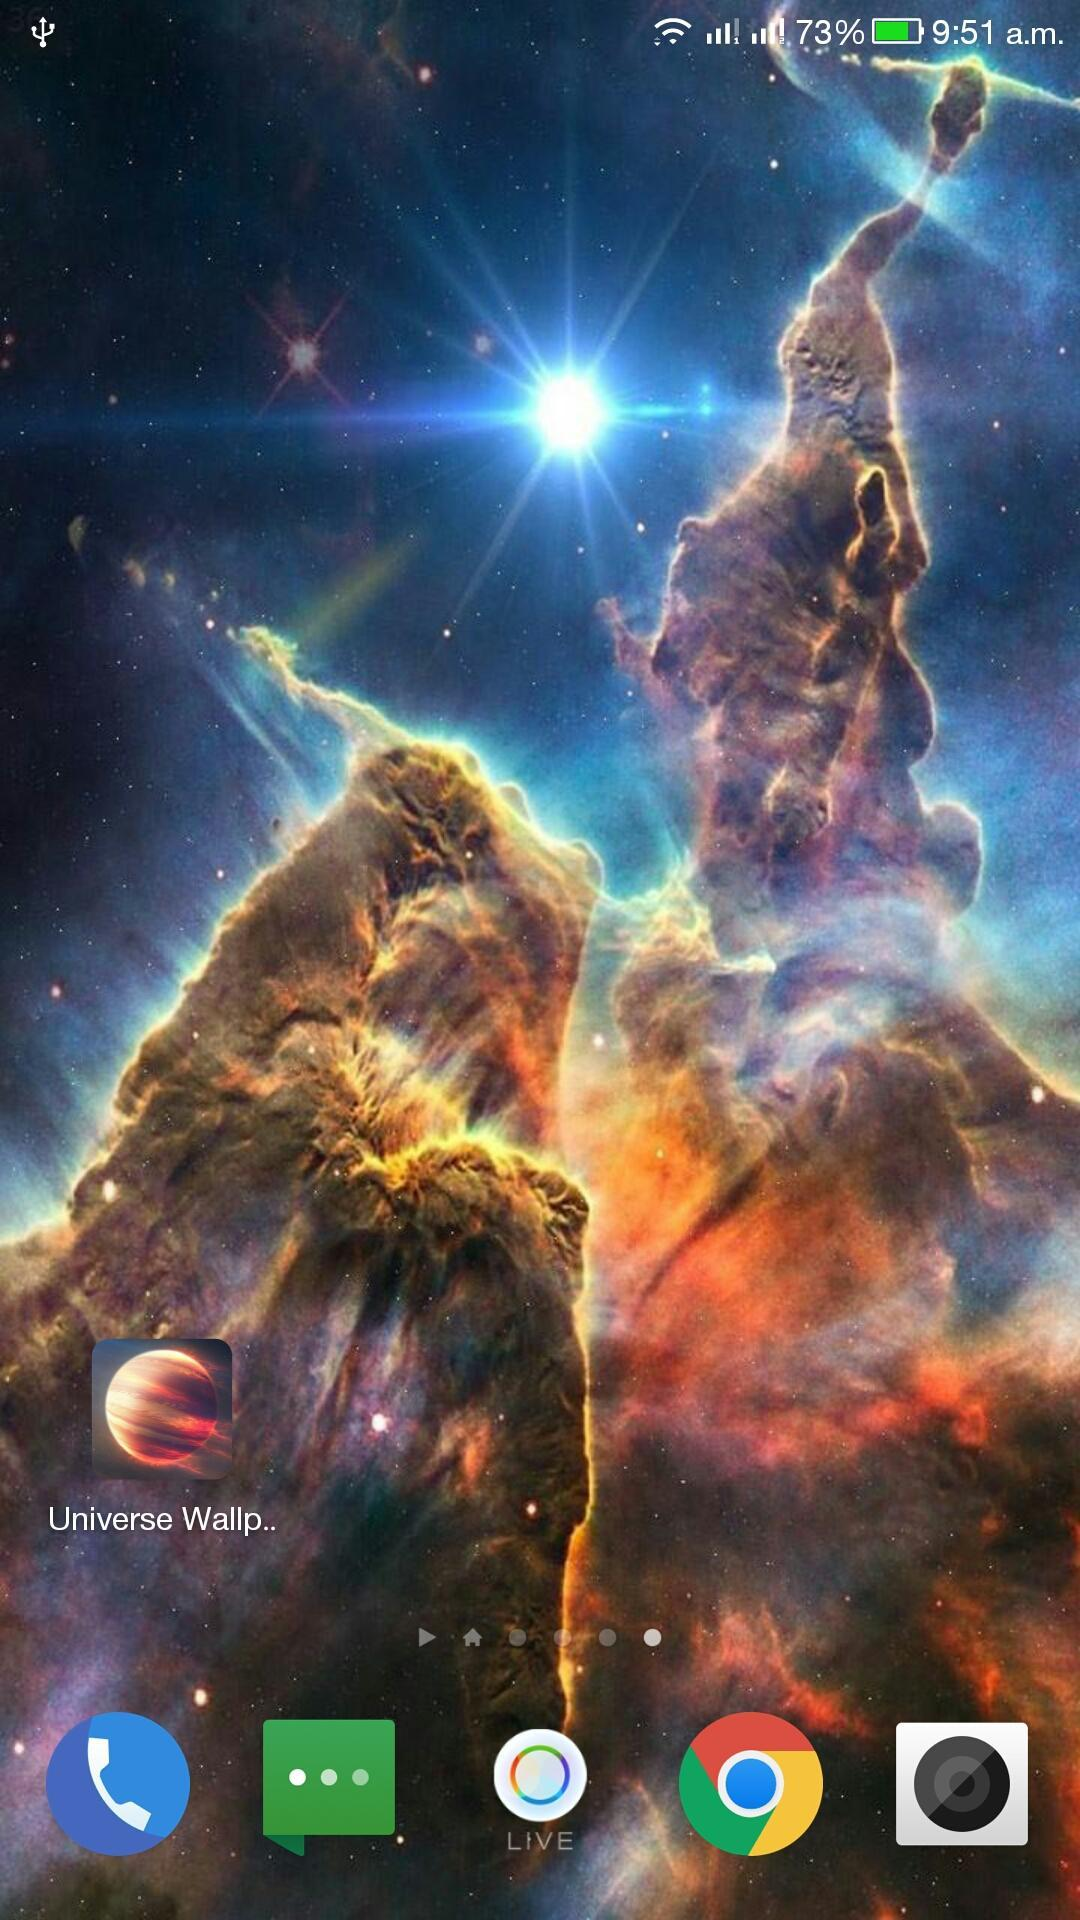 Universe Wallpaper Hd For Android Apk Download